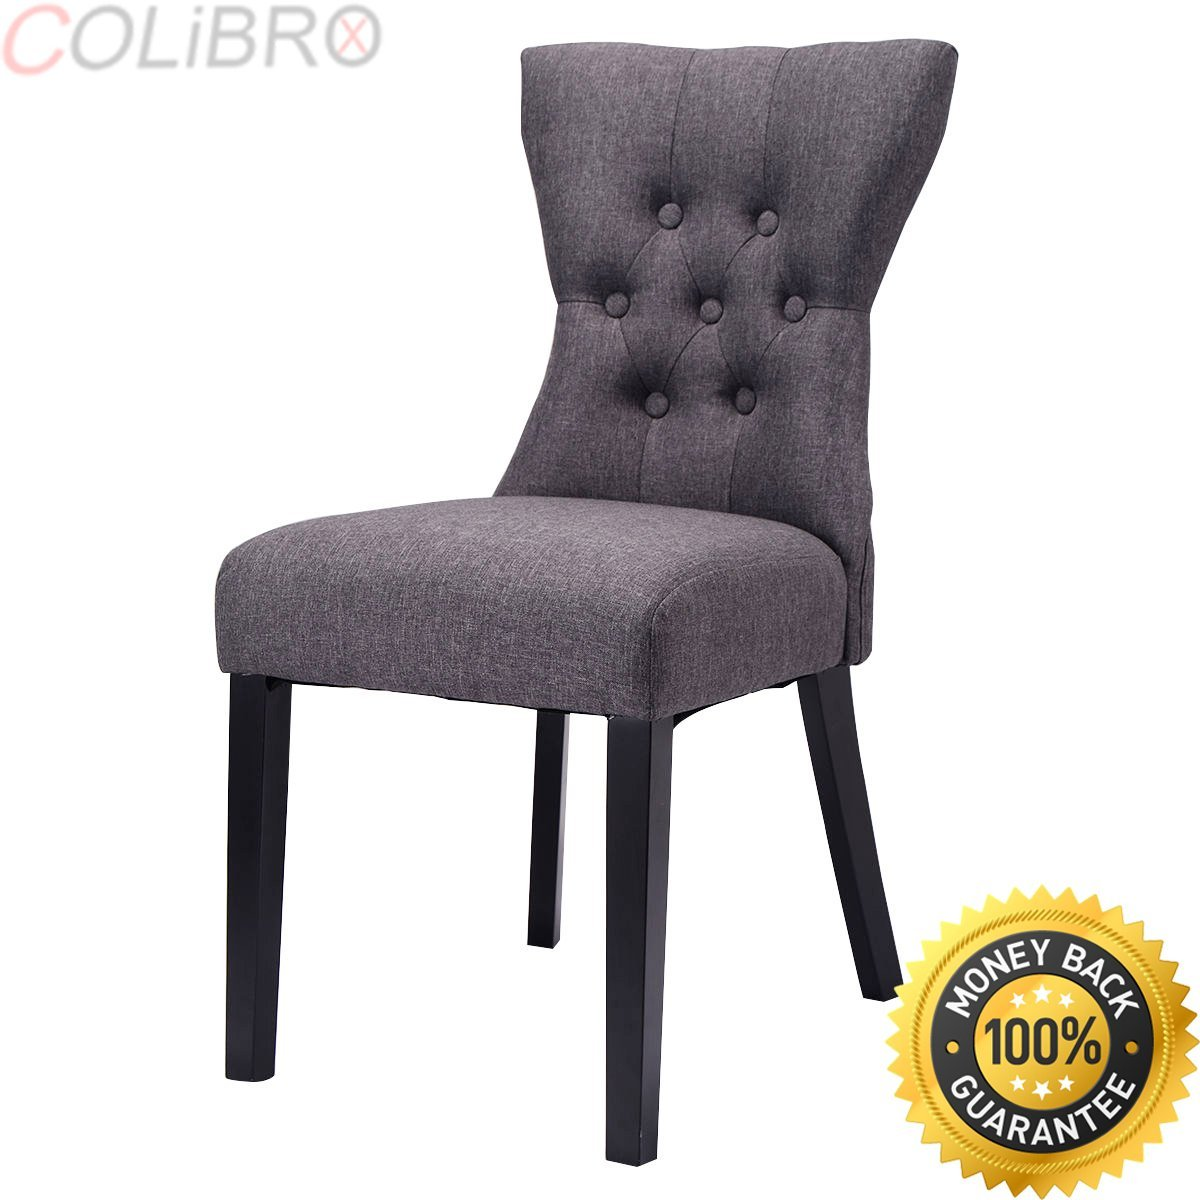 Get quotations · colibrox set of 2 dining chair modern armless tufted design living room furniture gray